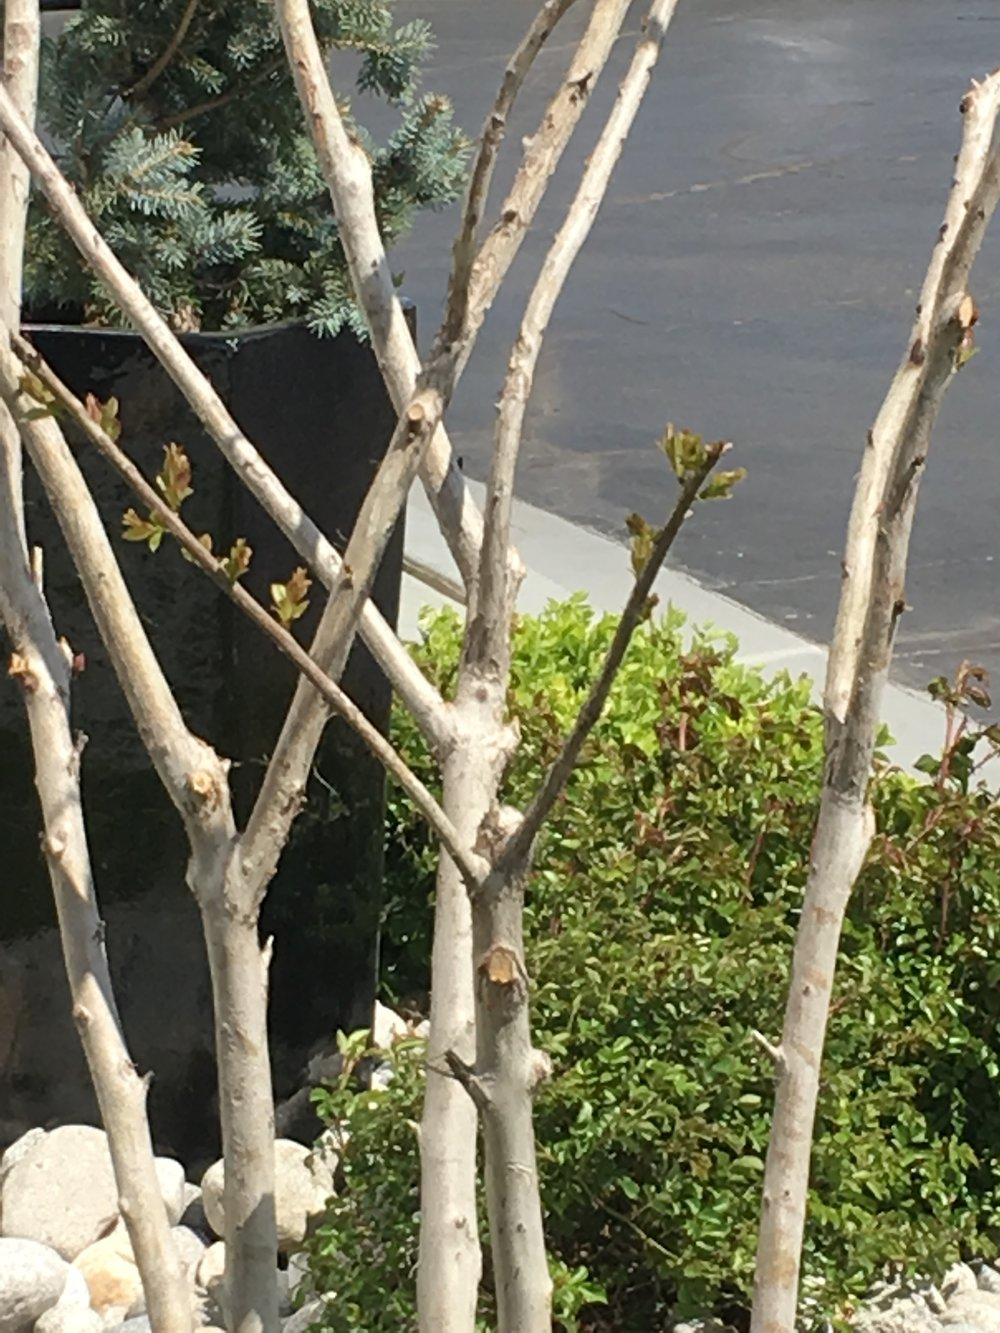 - First leaf buds on a pruned Crape Myrtle in late March.